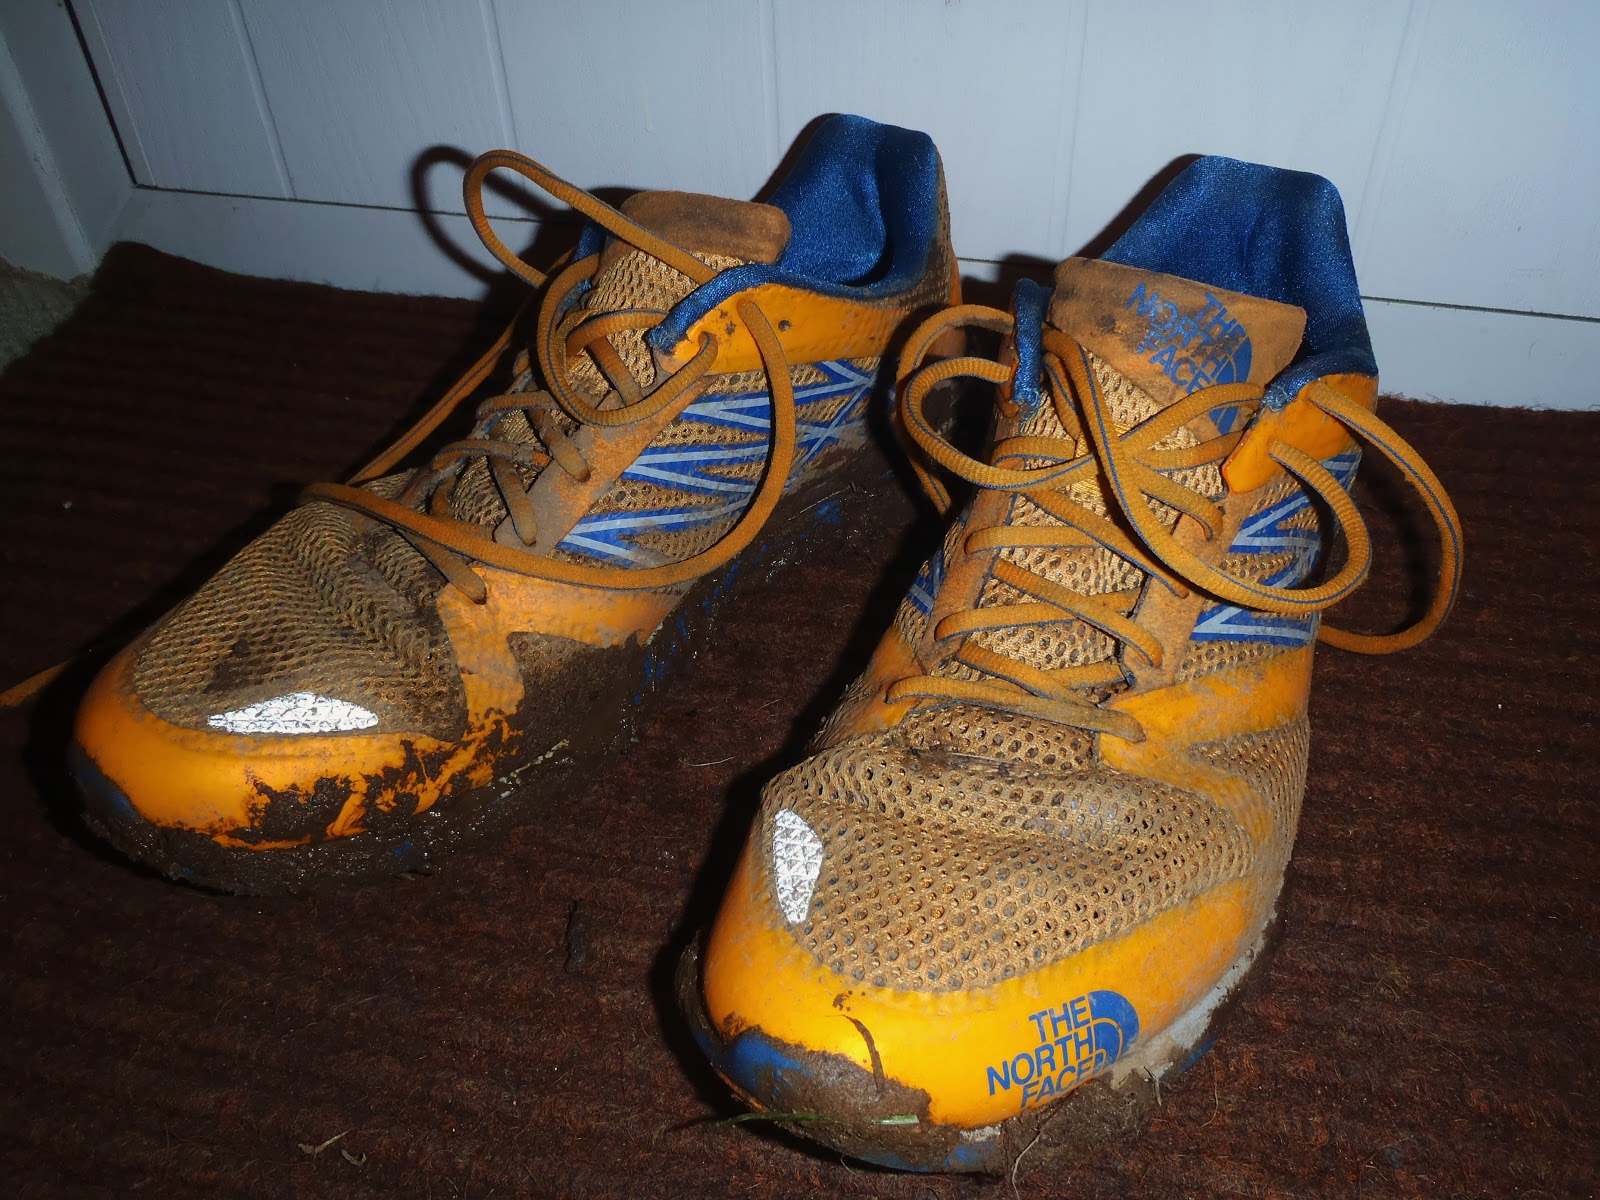 6a932b2a2 MountainZ: The North Face Hyper-Track Guide Running Shoe